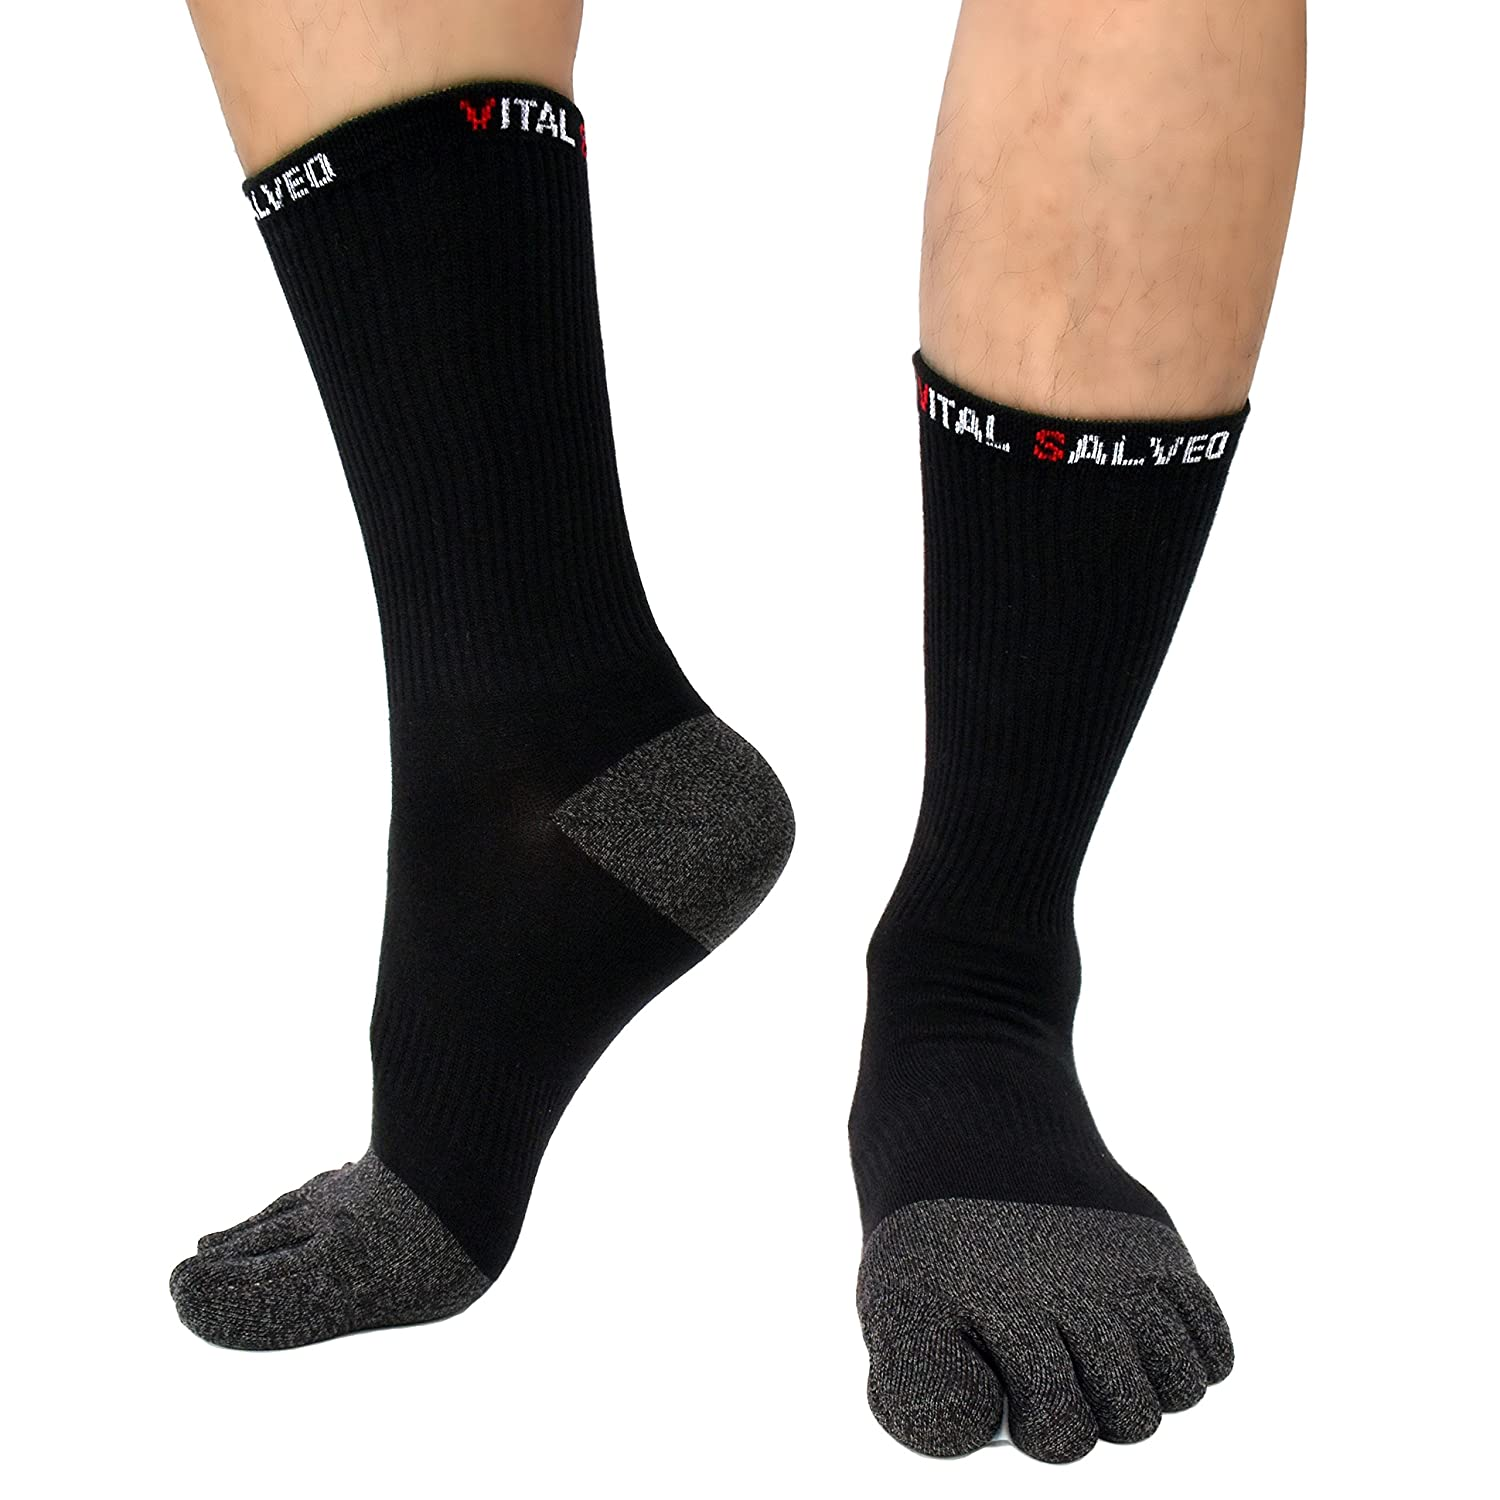 Vital Salveo- Toes Athletic Crew Socks Vital Silver 957152